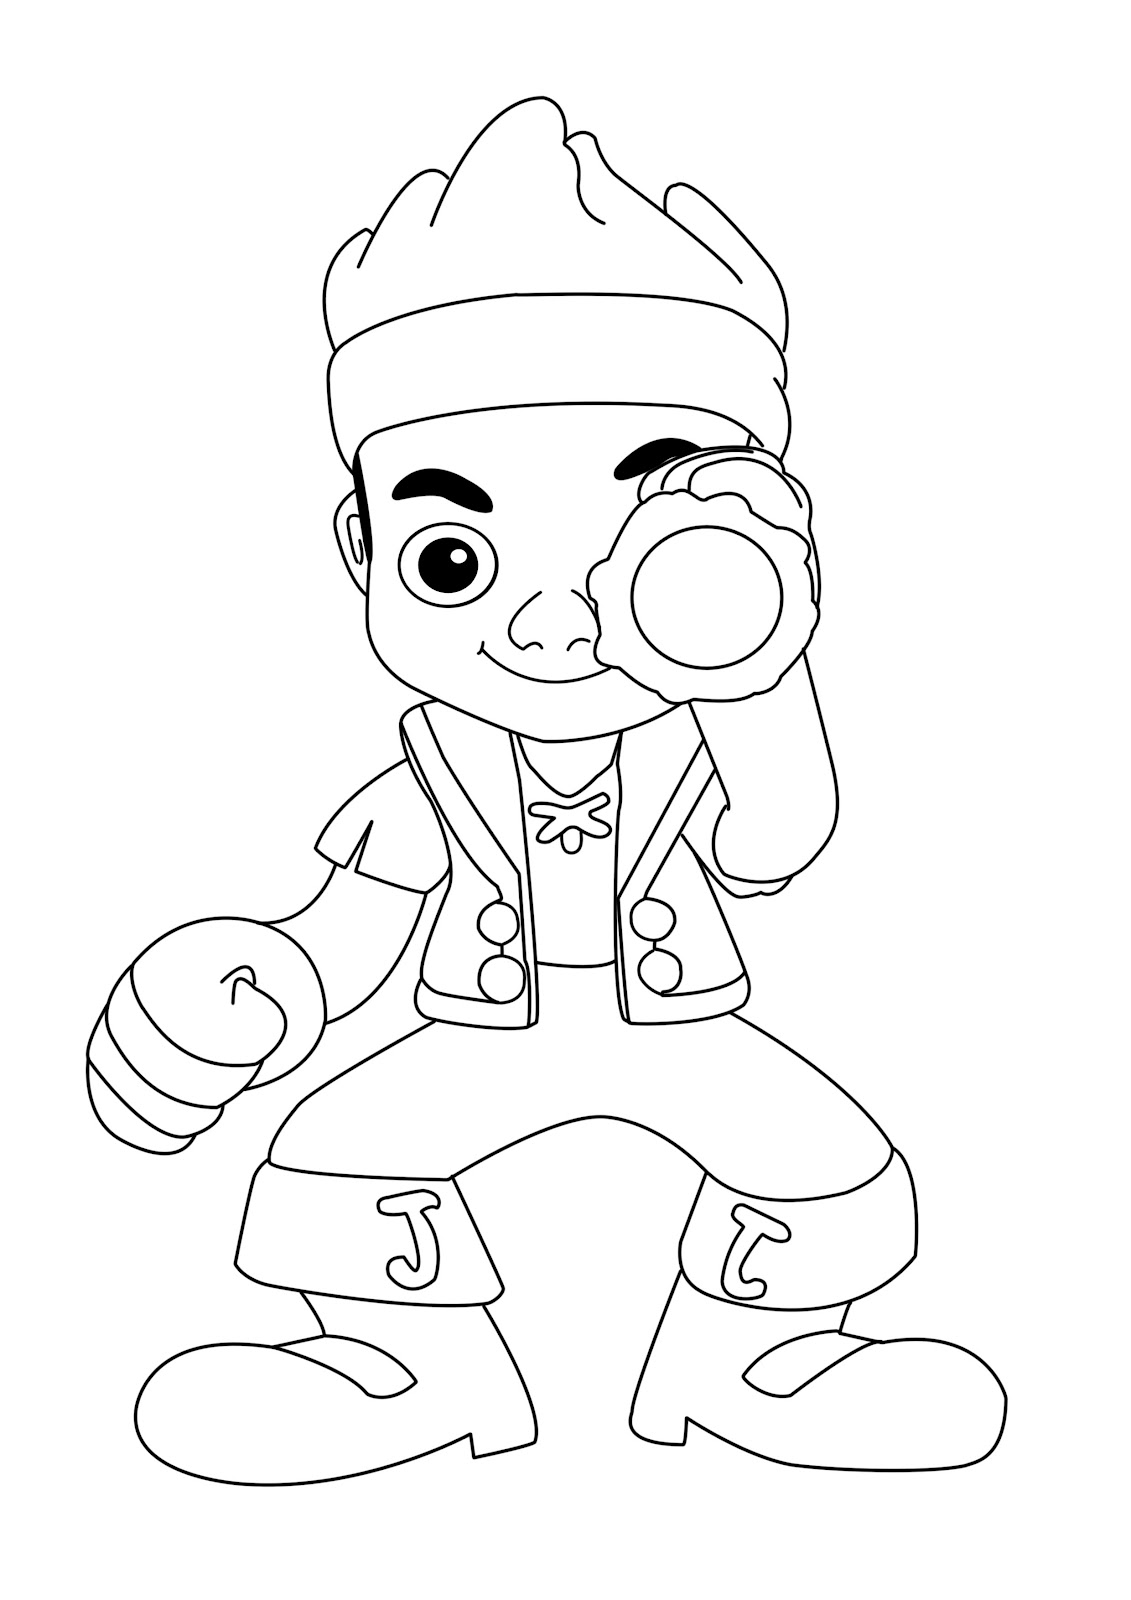 1131x1600 Jake The Pirate Coloring Pages And Never Land Pirates Team Colors